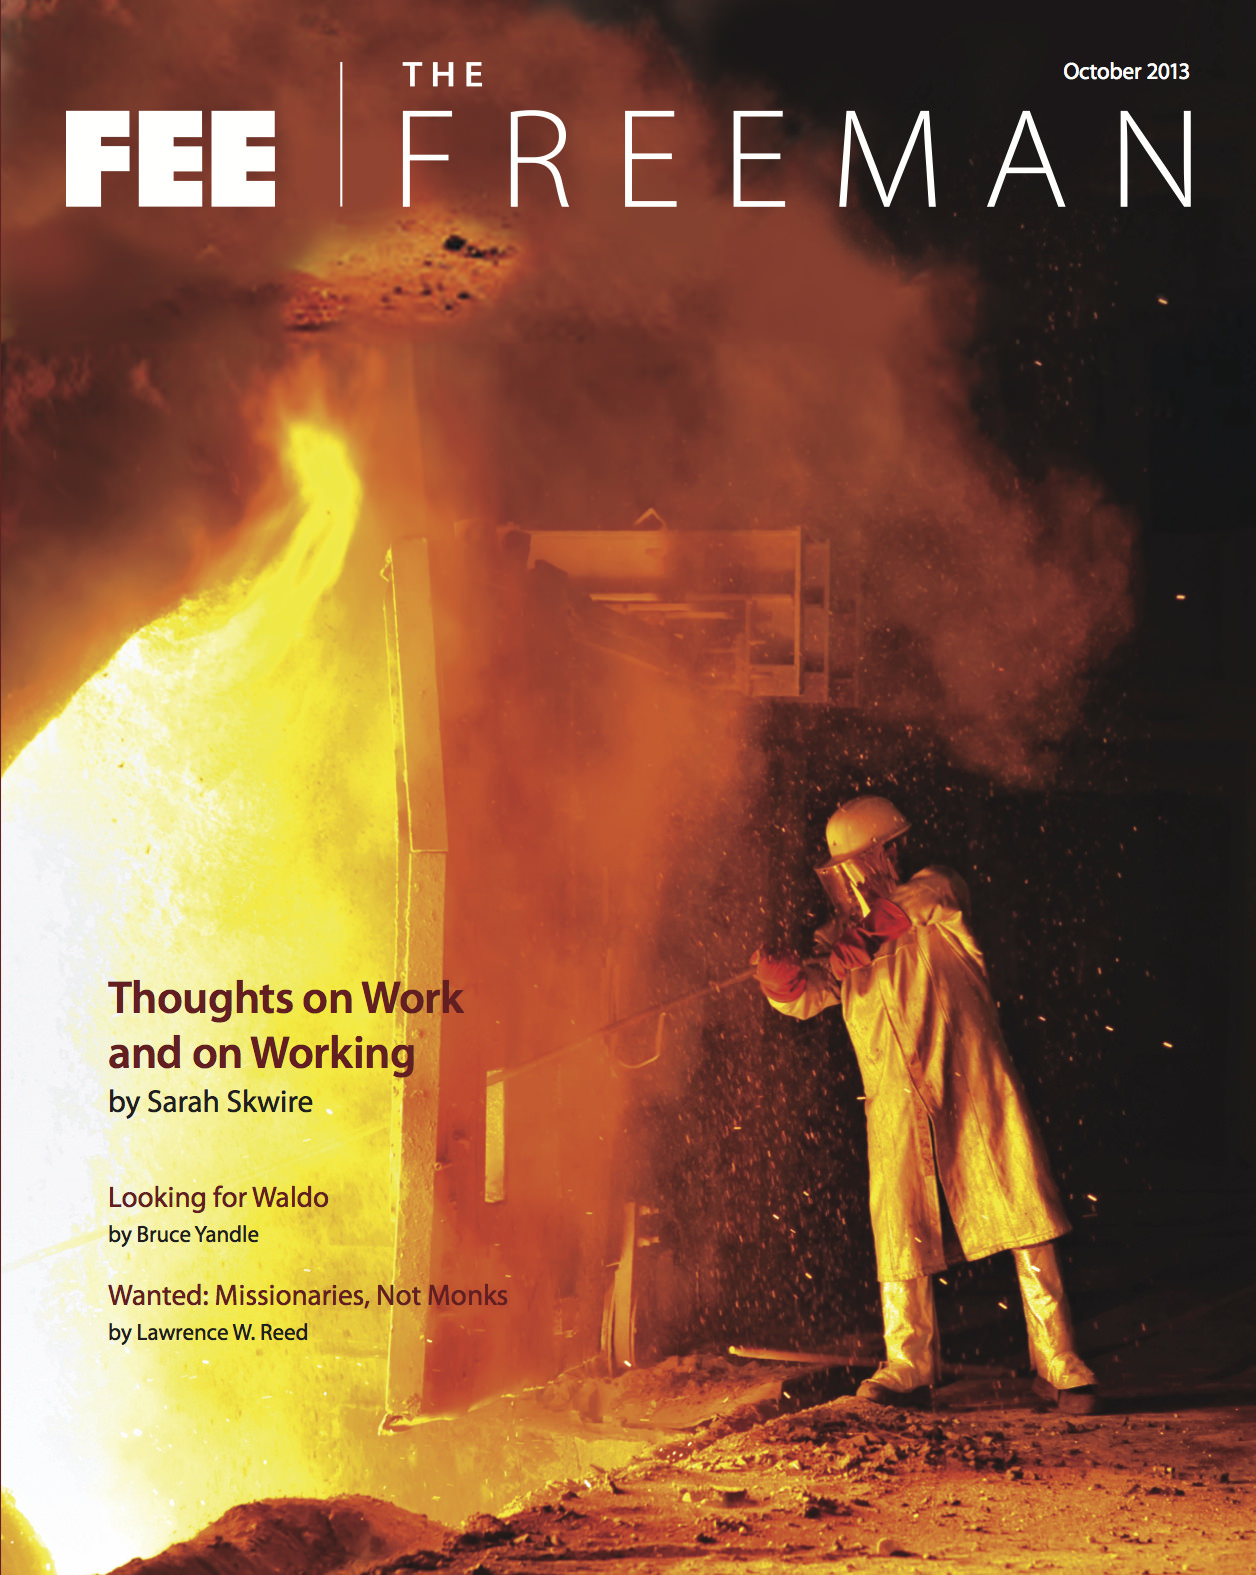 cover image October 2013